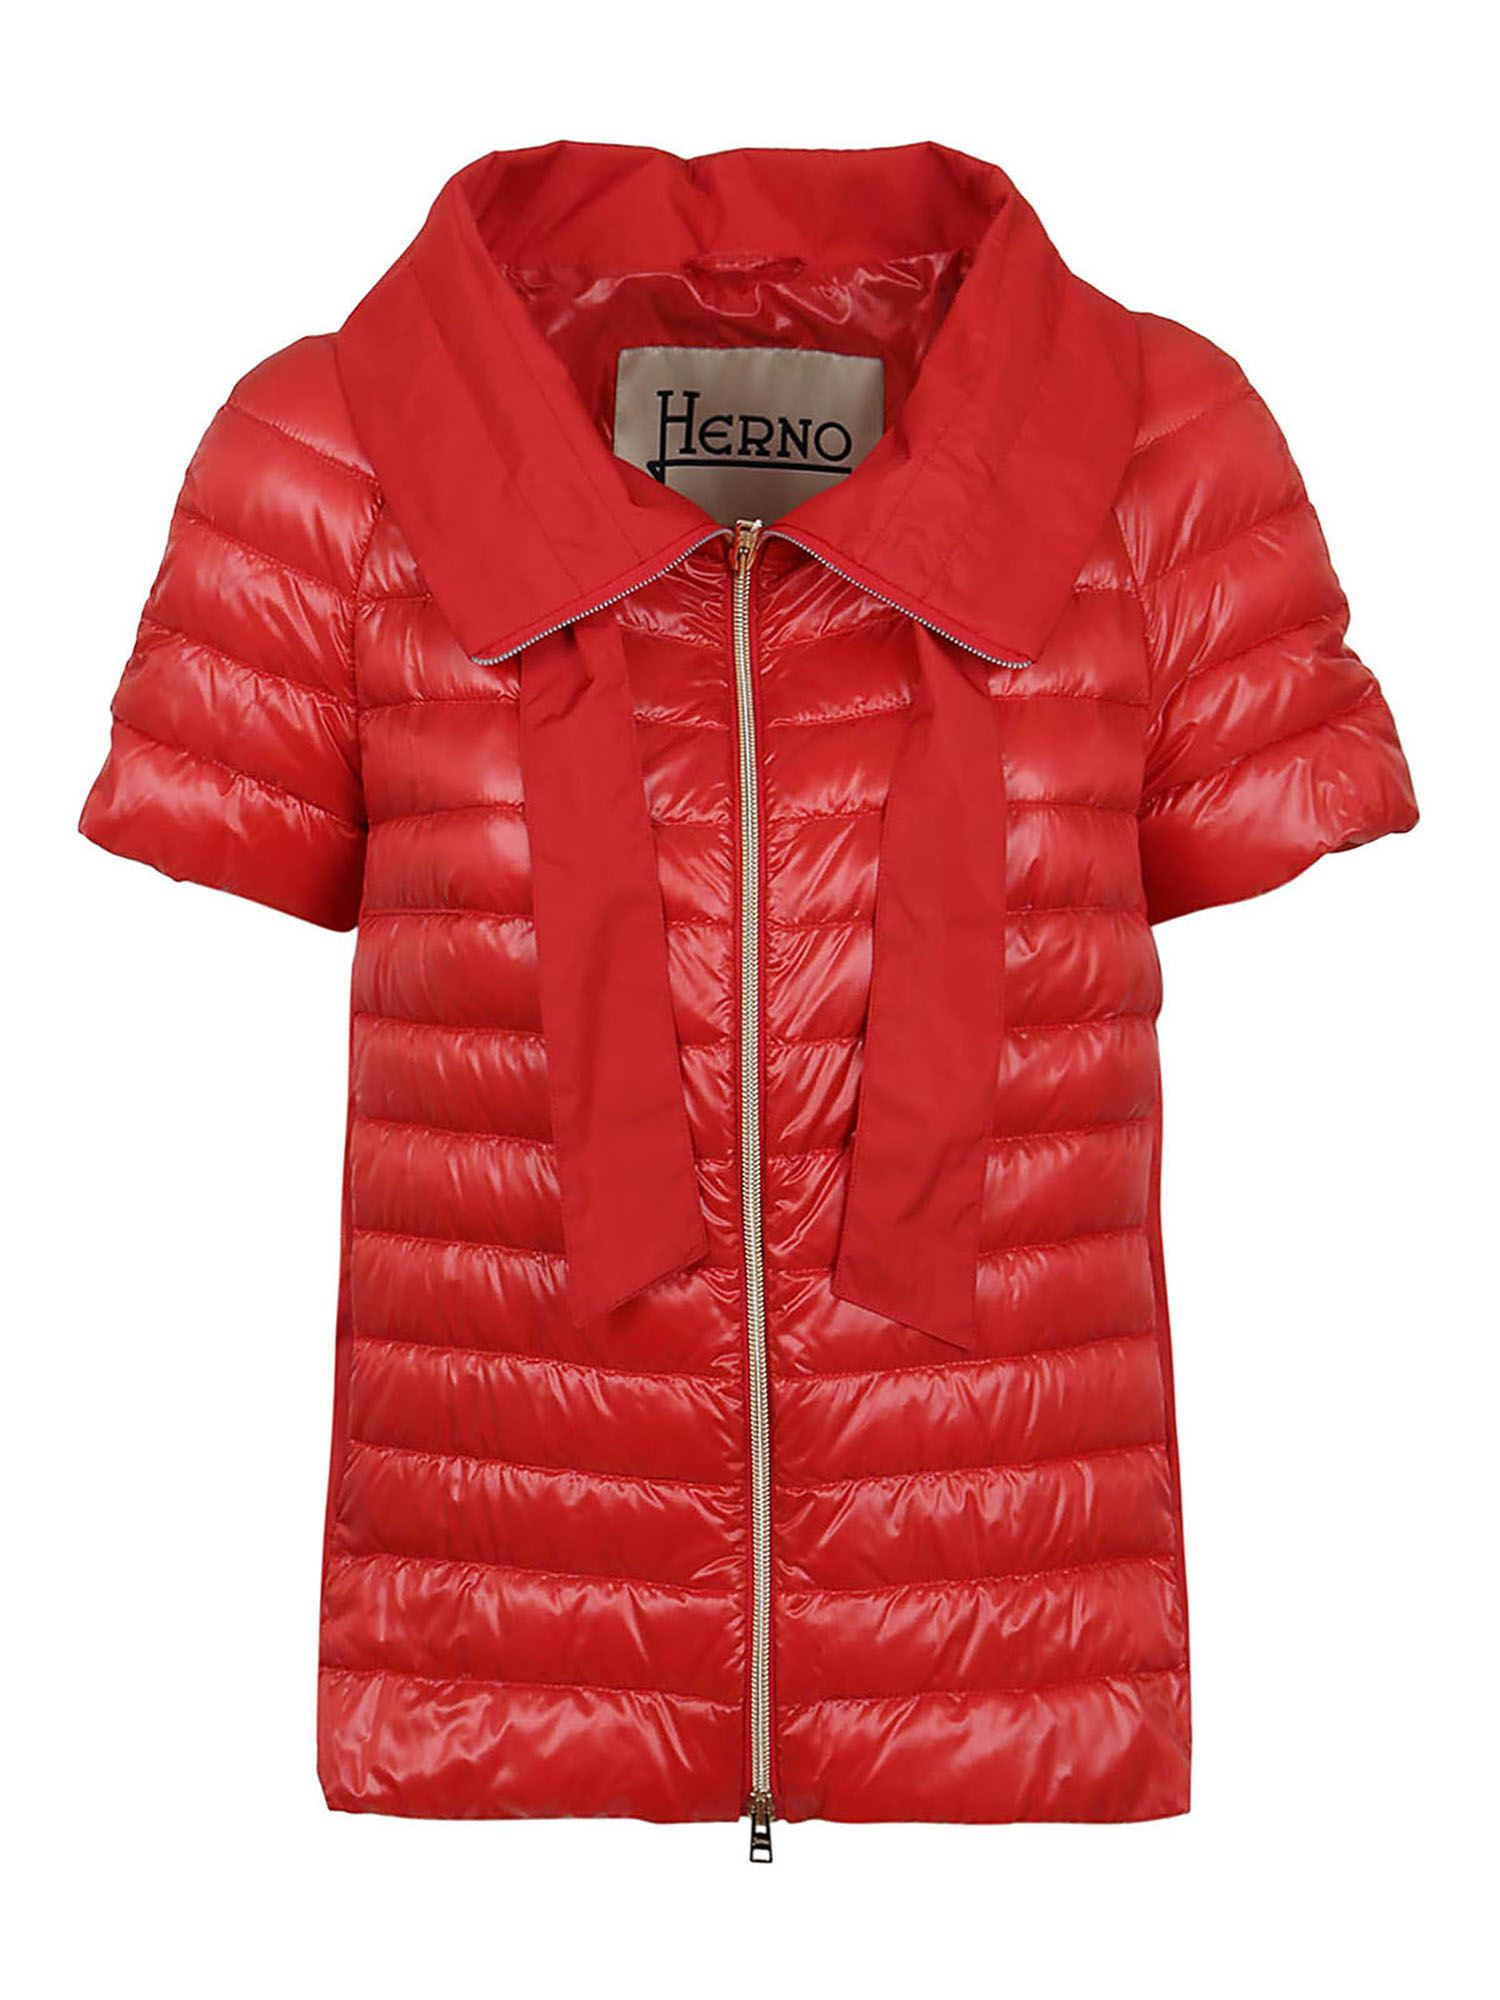 HERNO SHORT SLEEVE PUFFER JACKET IN RED